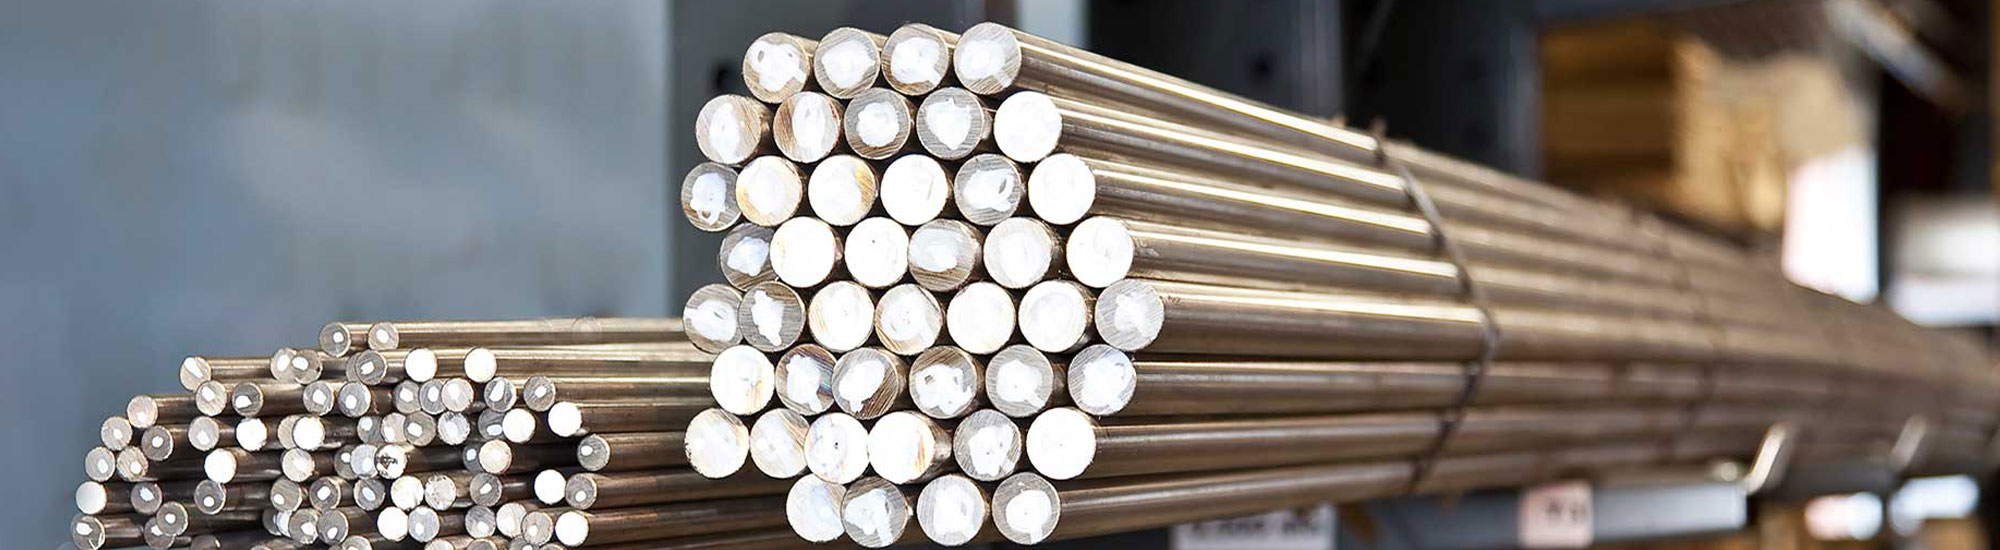 Stainless Steel Round Bar manufacturer in India